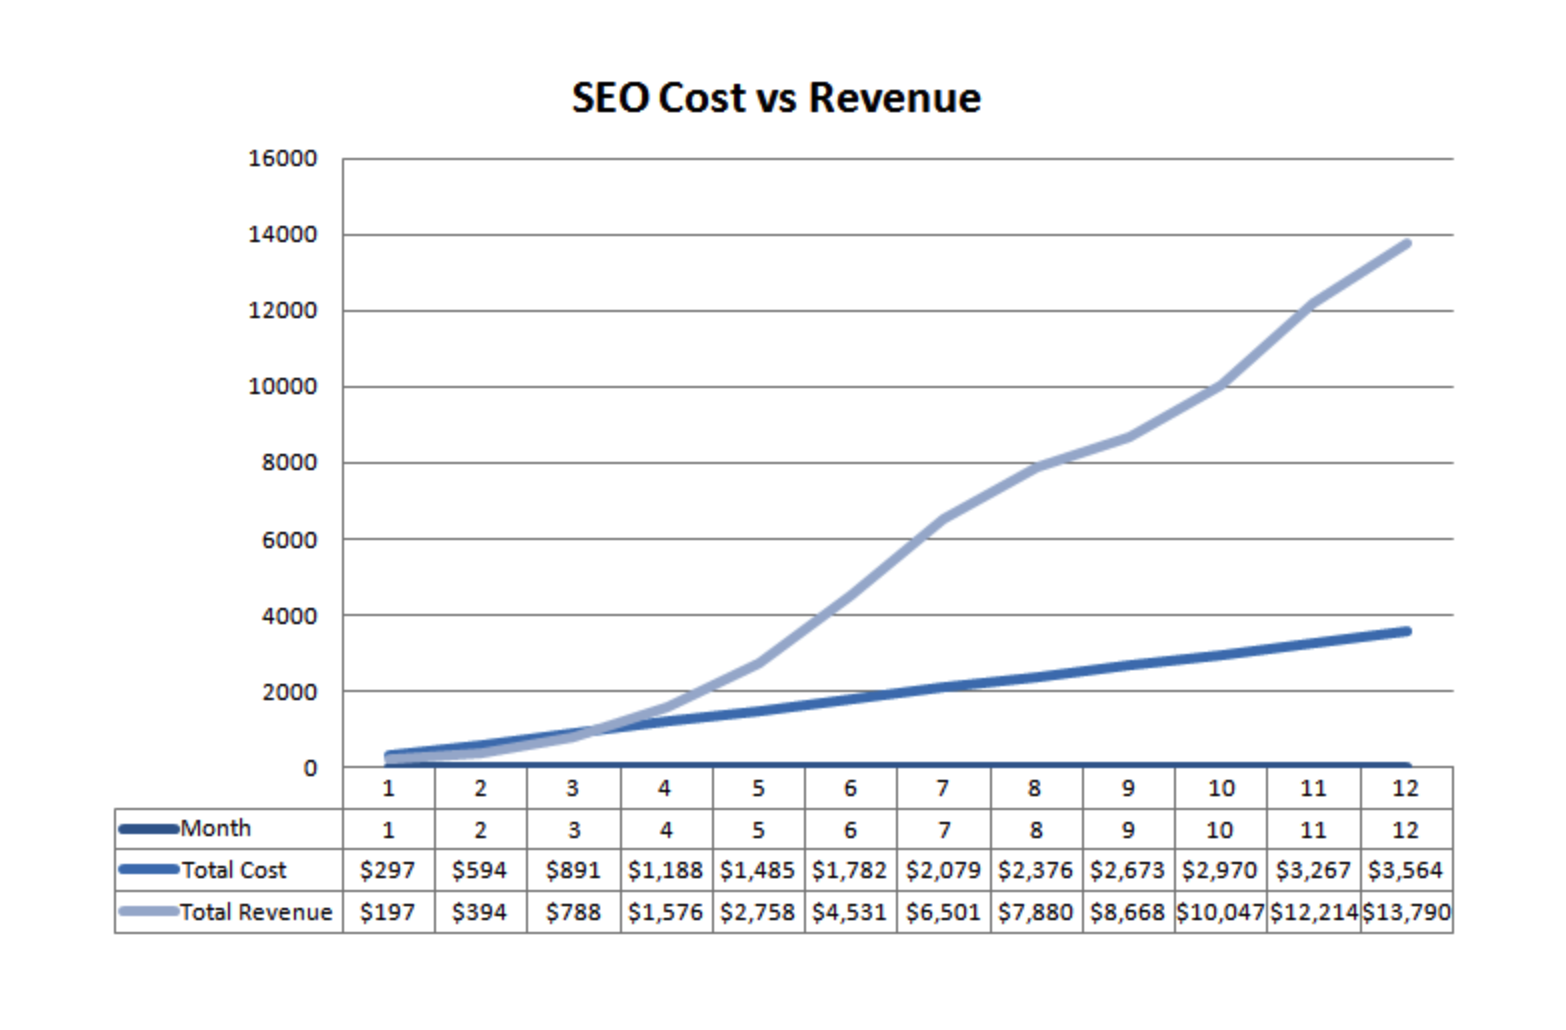 SEO cost vs revenue